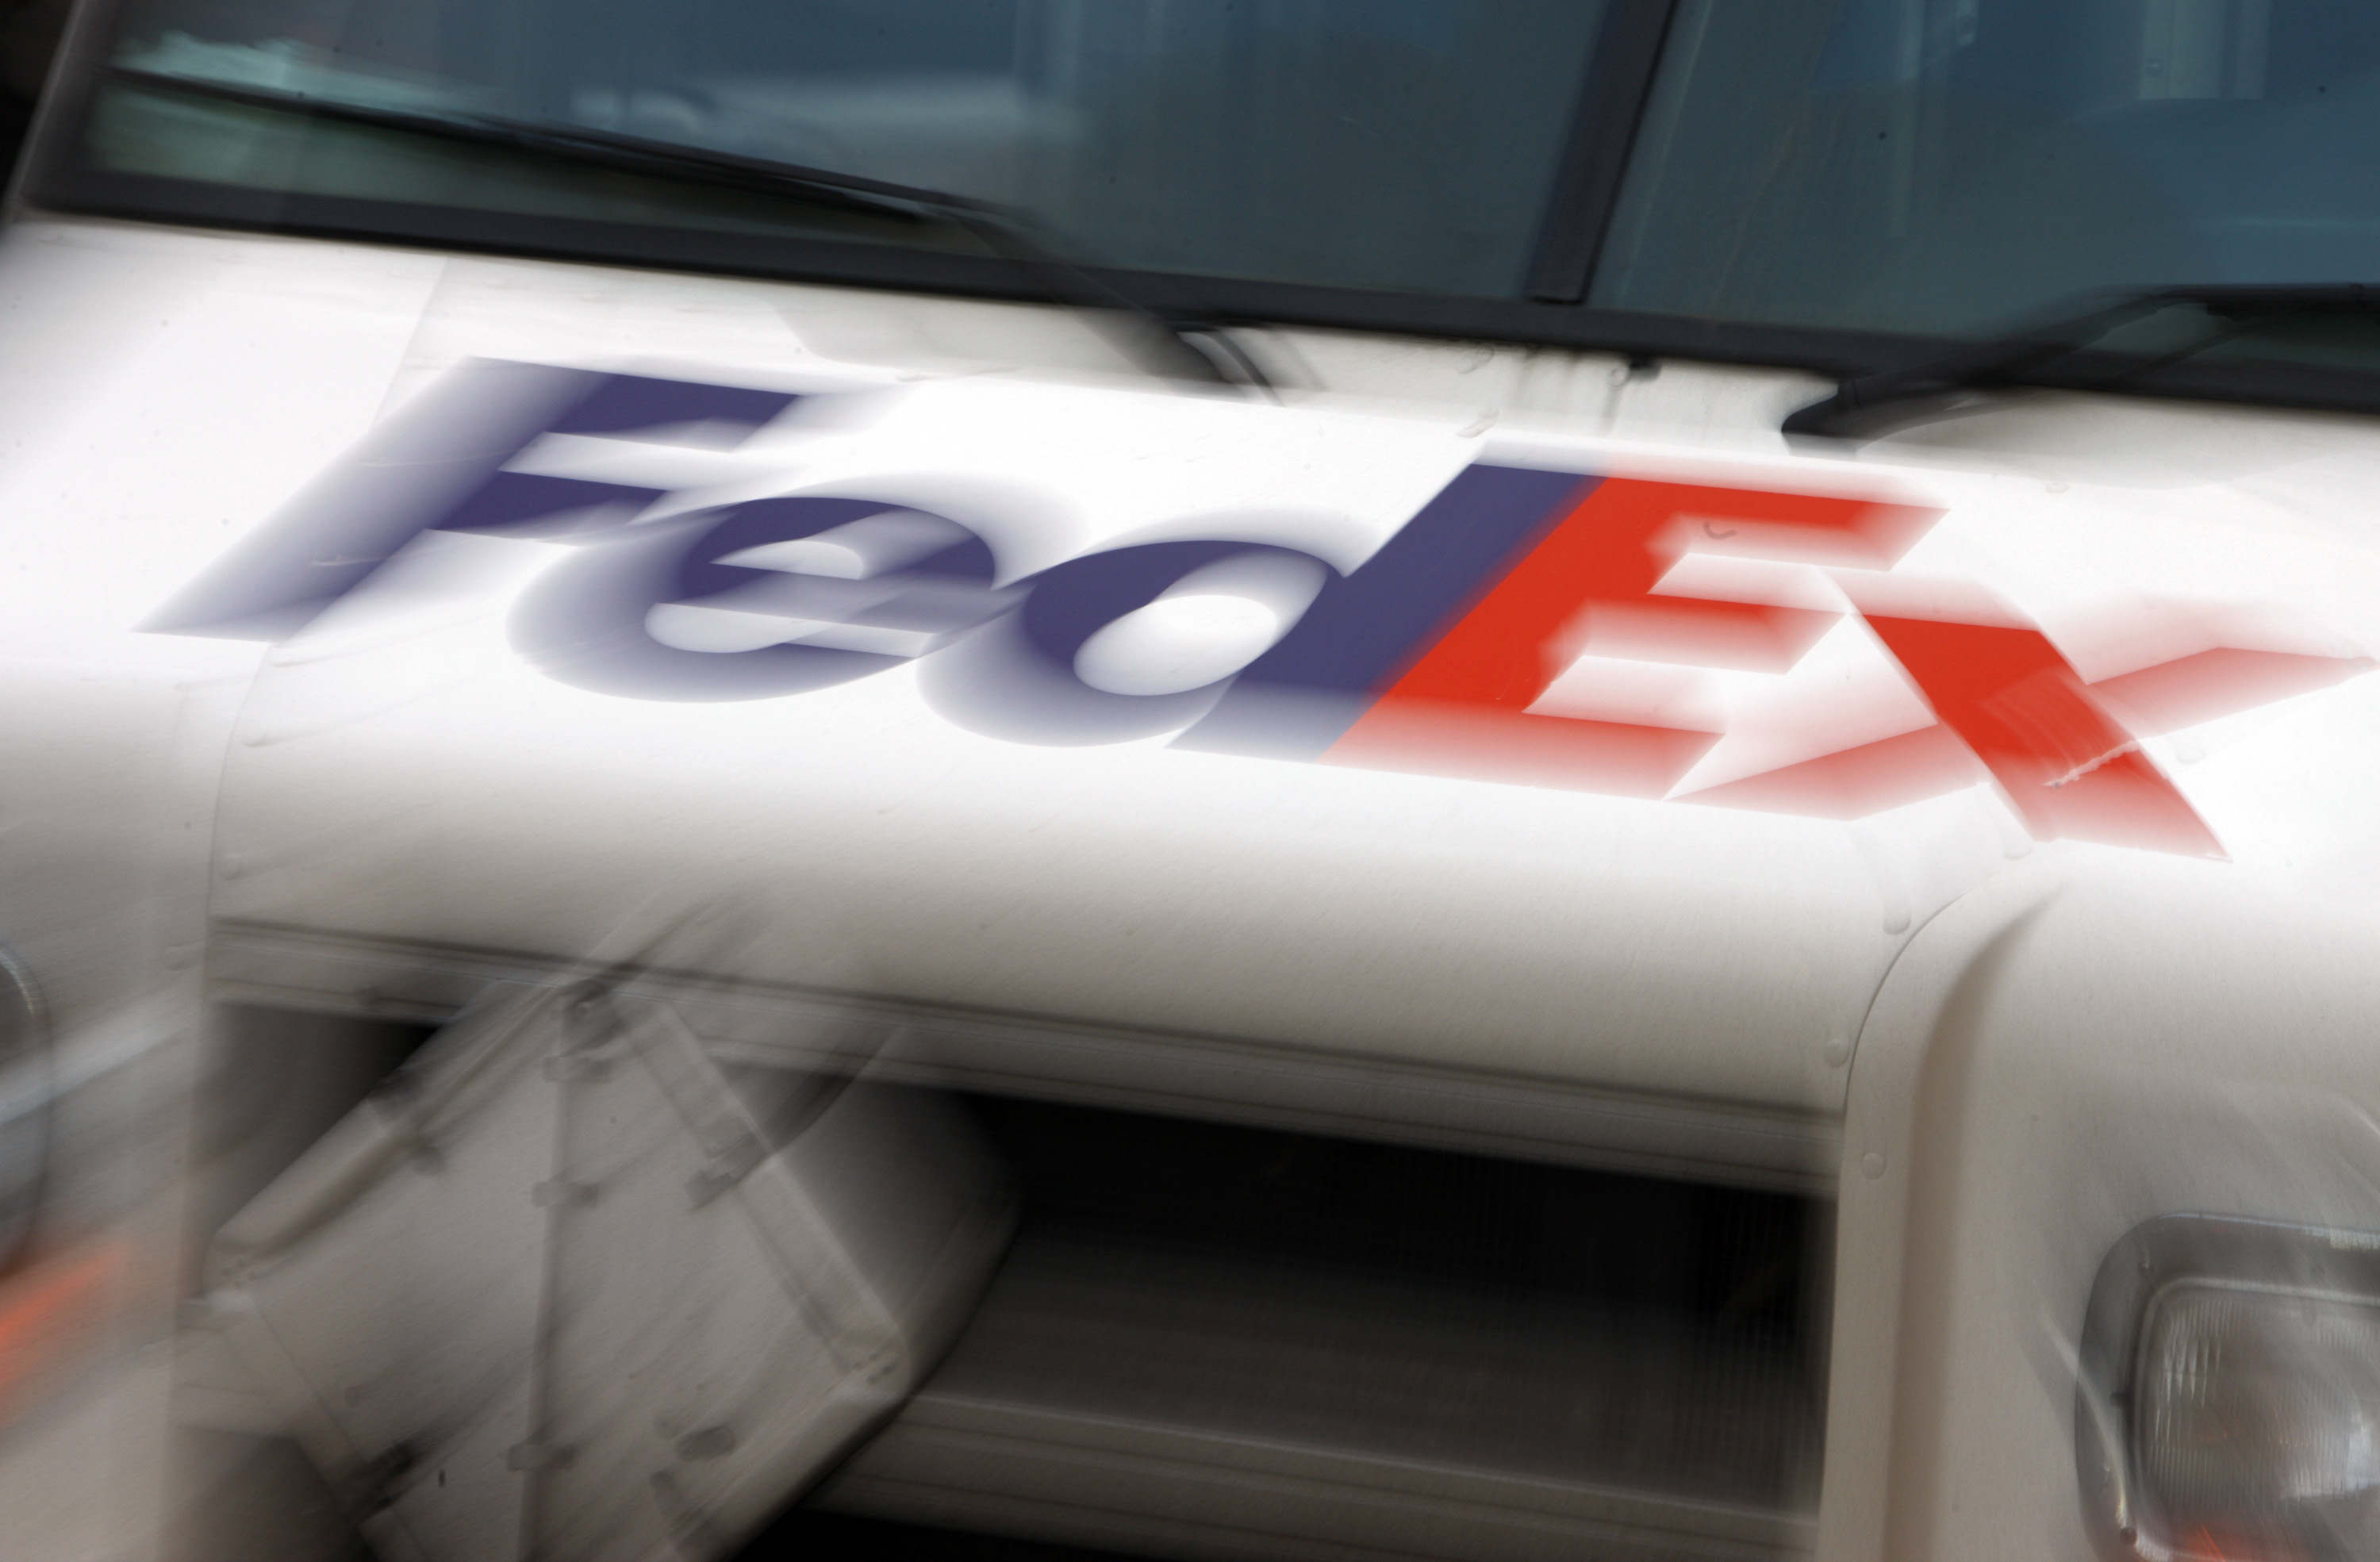 FedEx driver fatally punches man yelling racial slurs